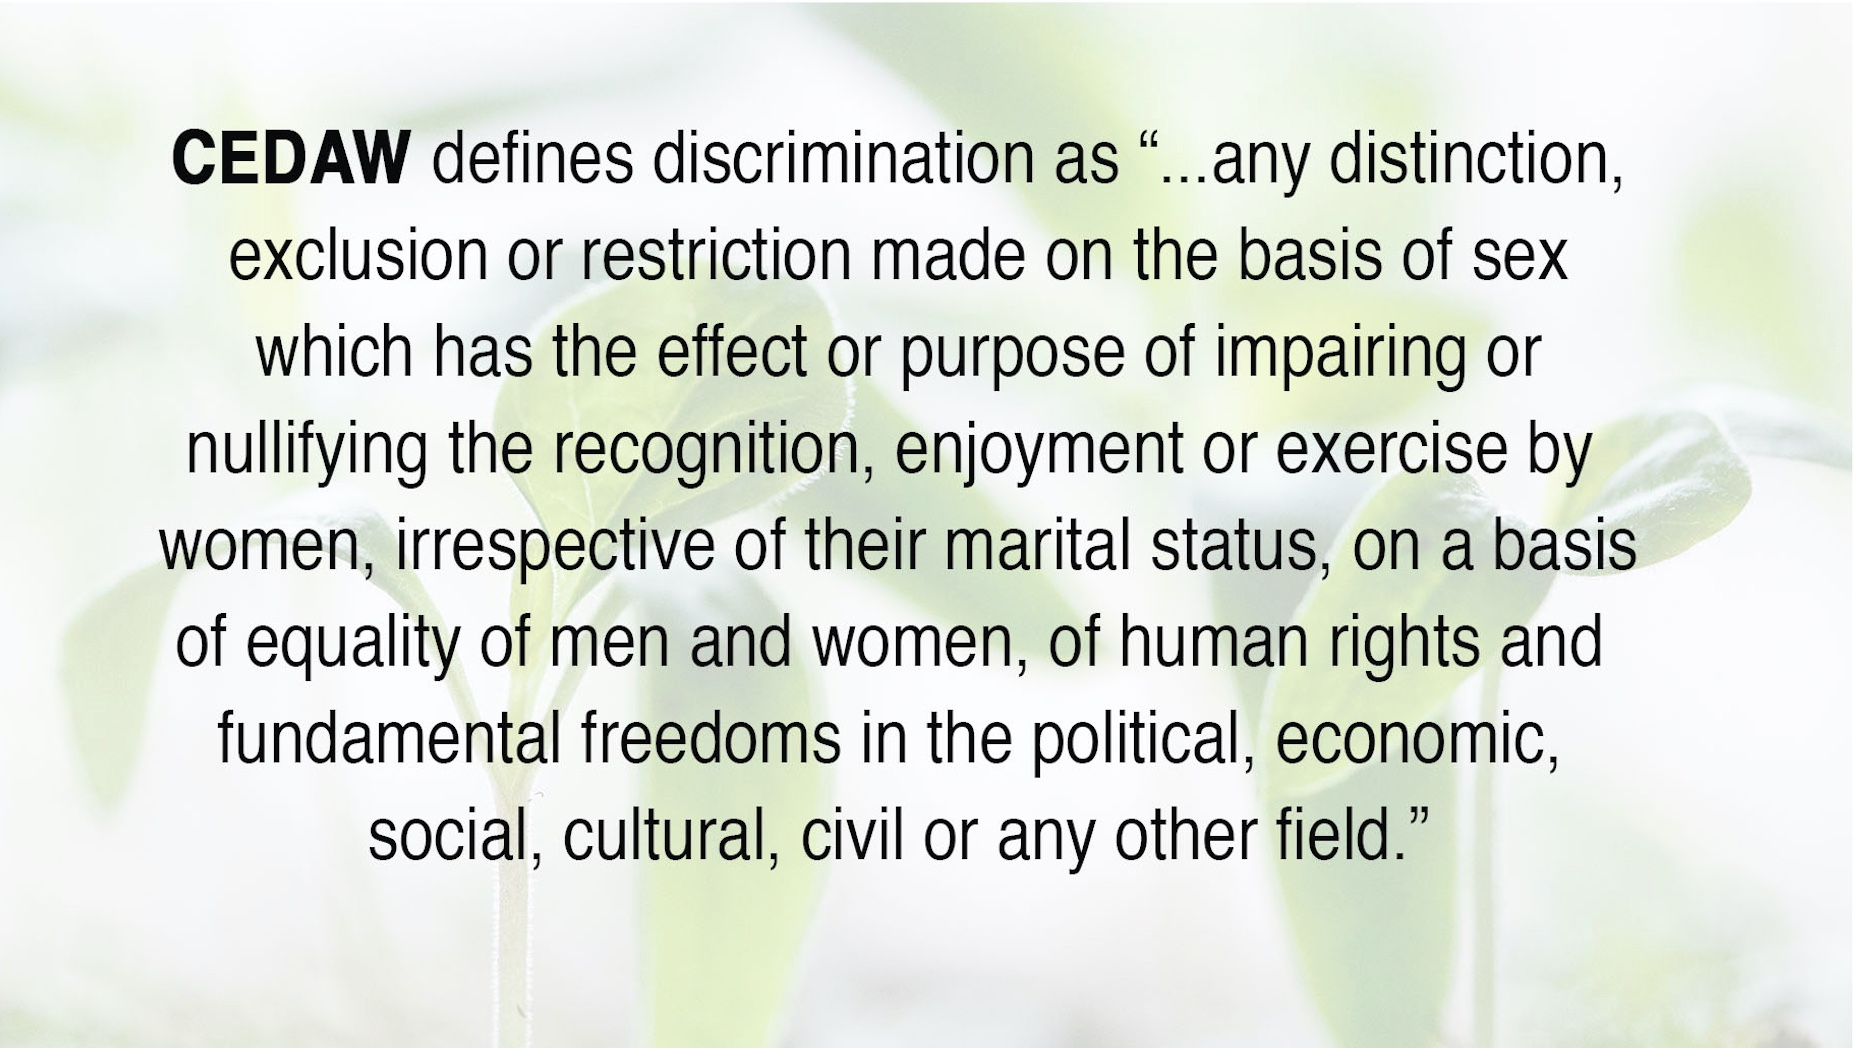 source: http://www.un.org/womenwatch/daw/cedaw/